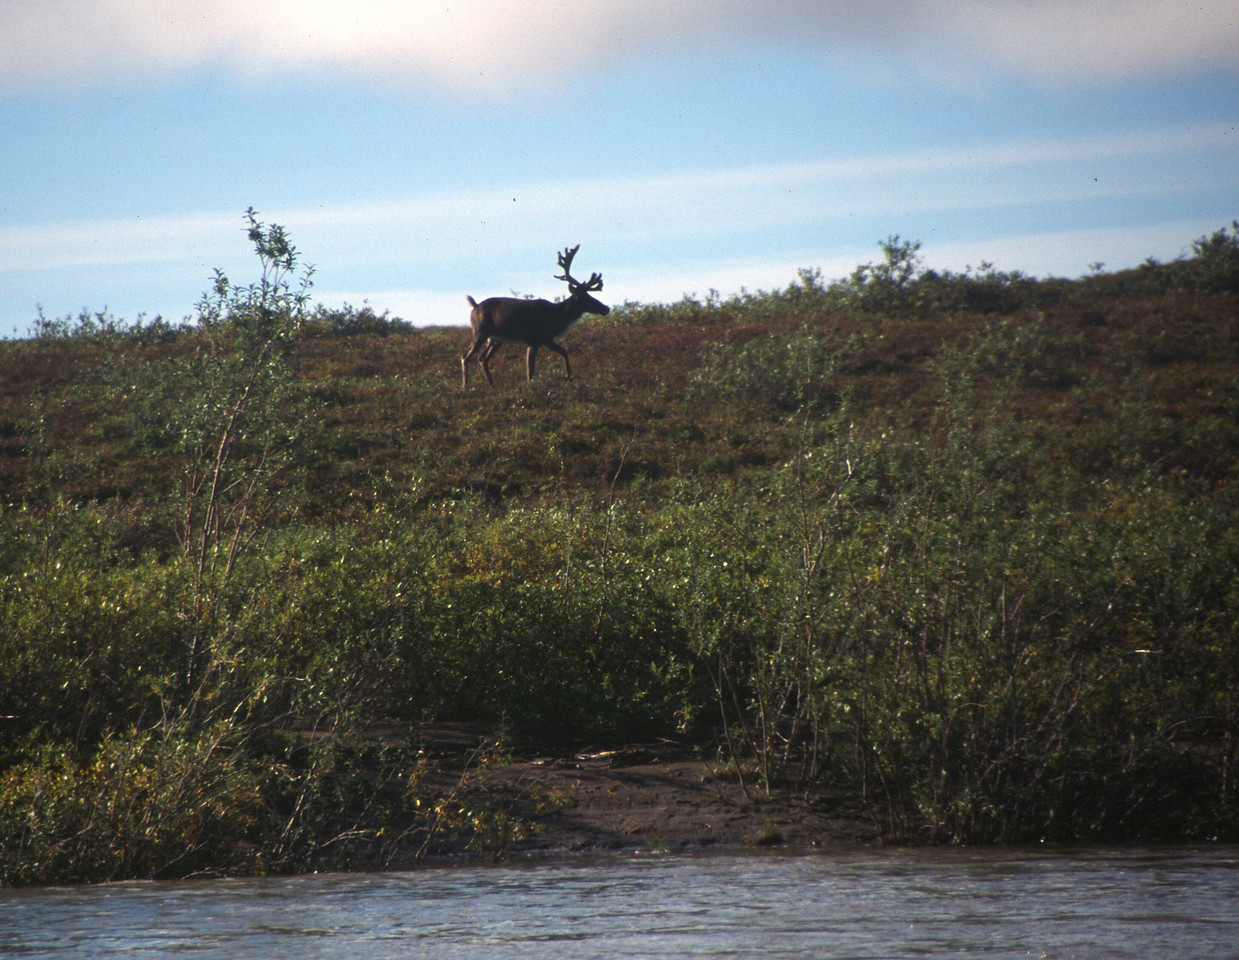 The sun finally returns and caribou are easier to photograph